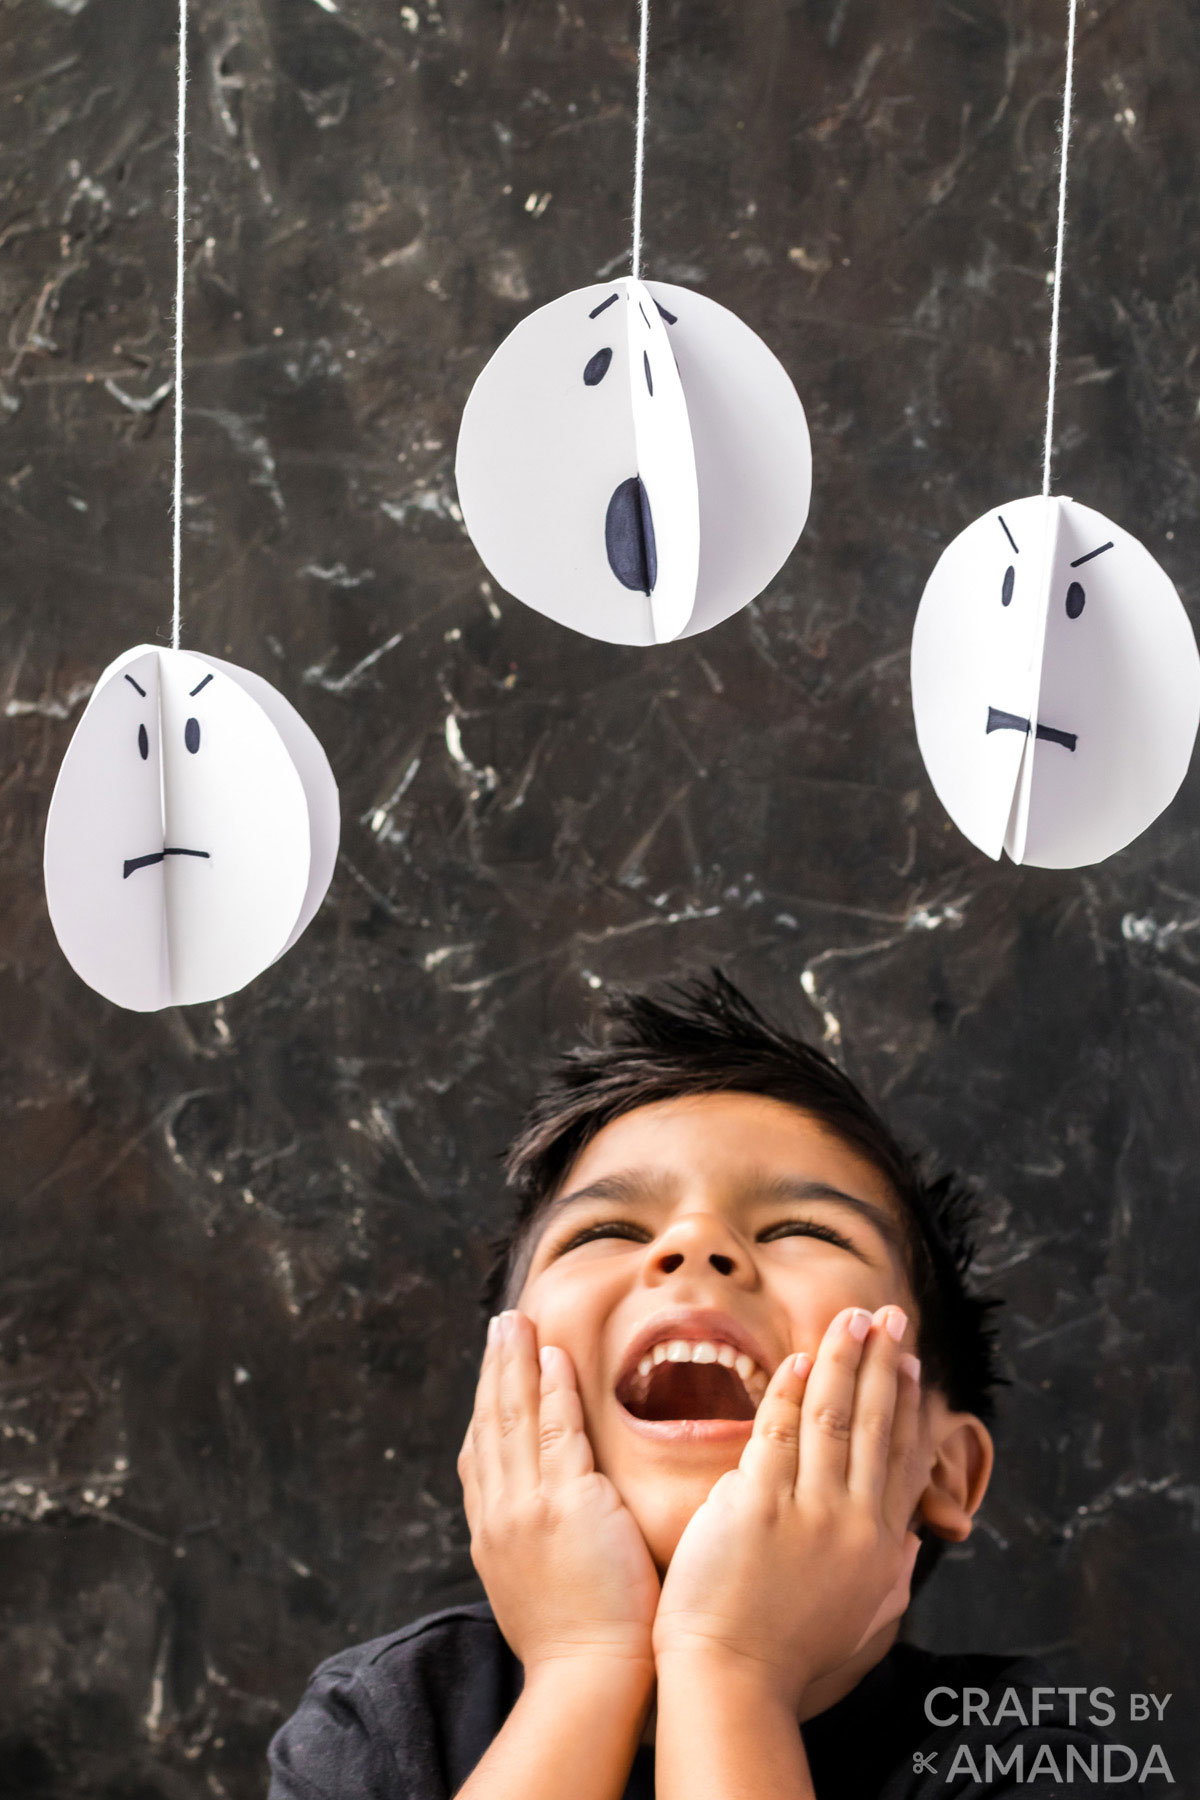 little boy with hands on cheeks looking up at paper ghosts